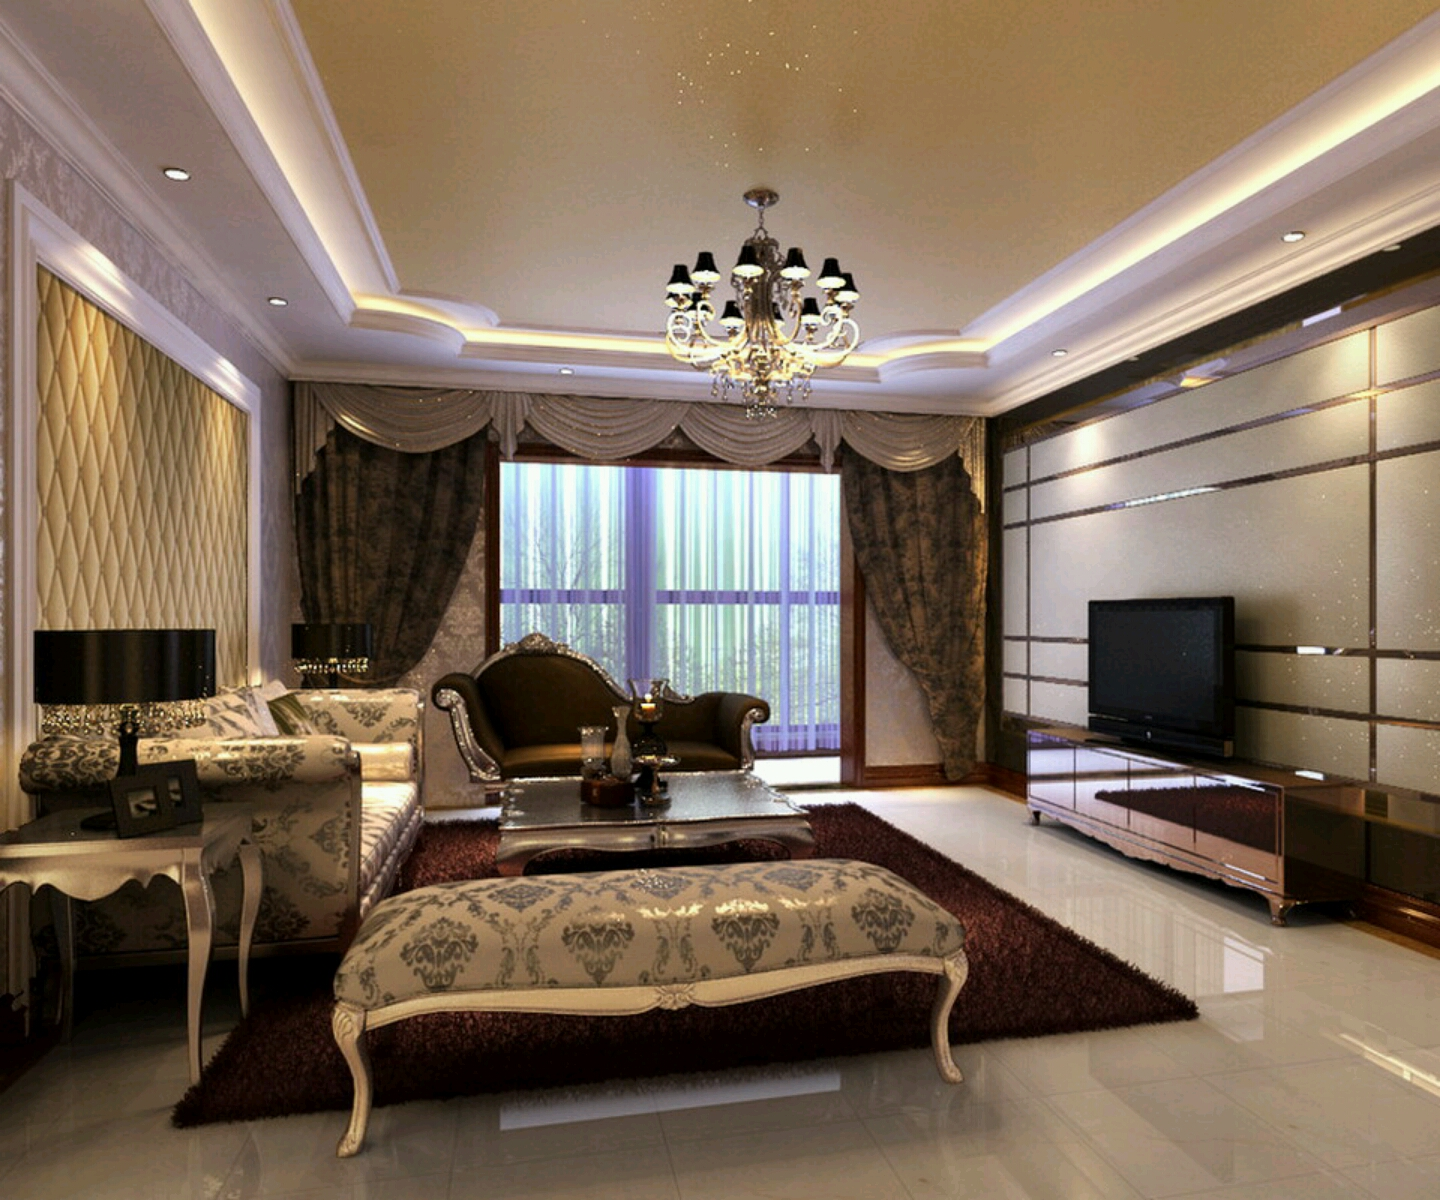 New home designs latest luxury homes interior decoration for Home interiors decor